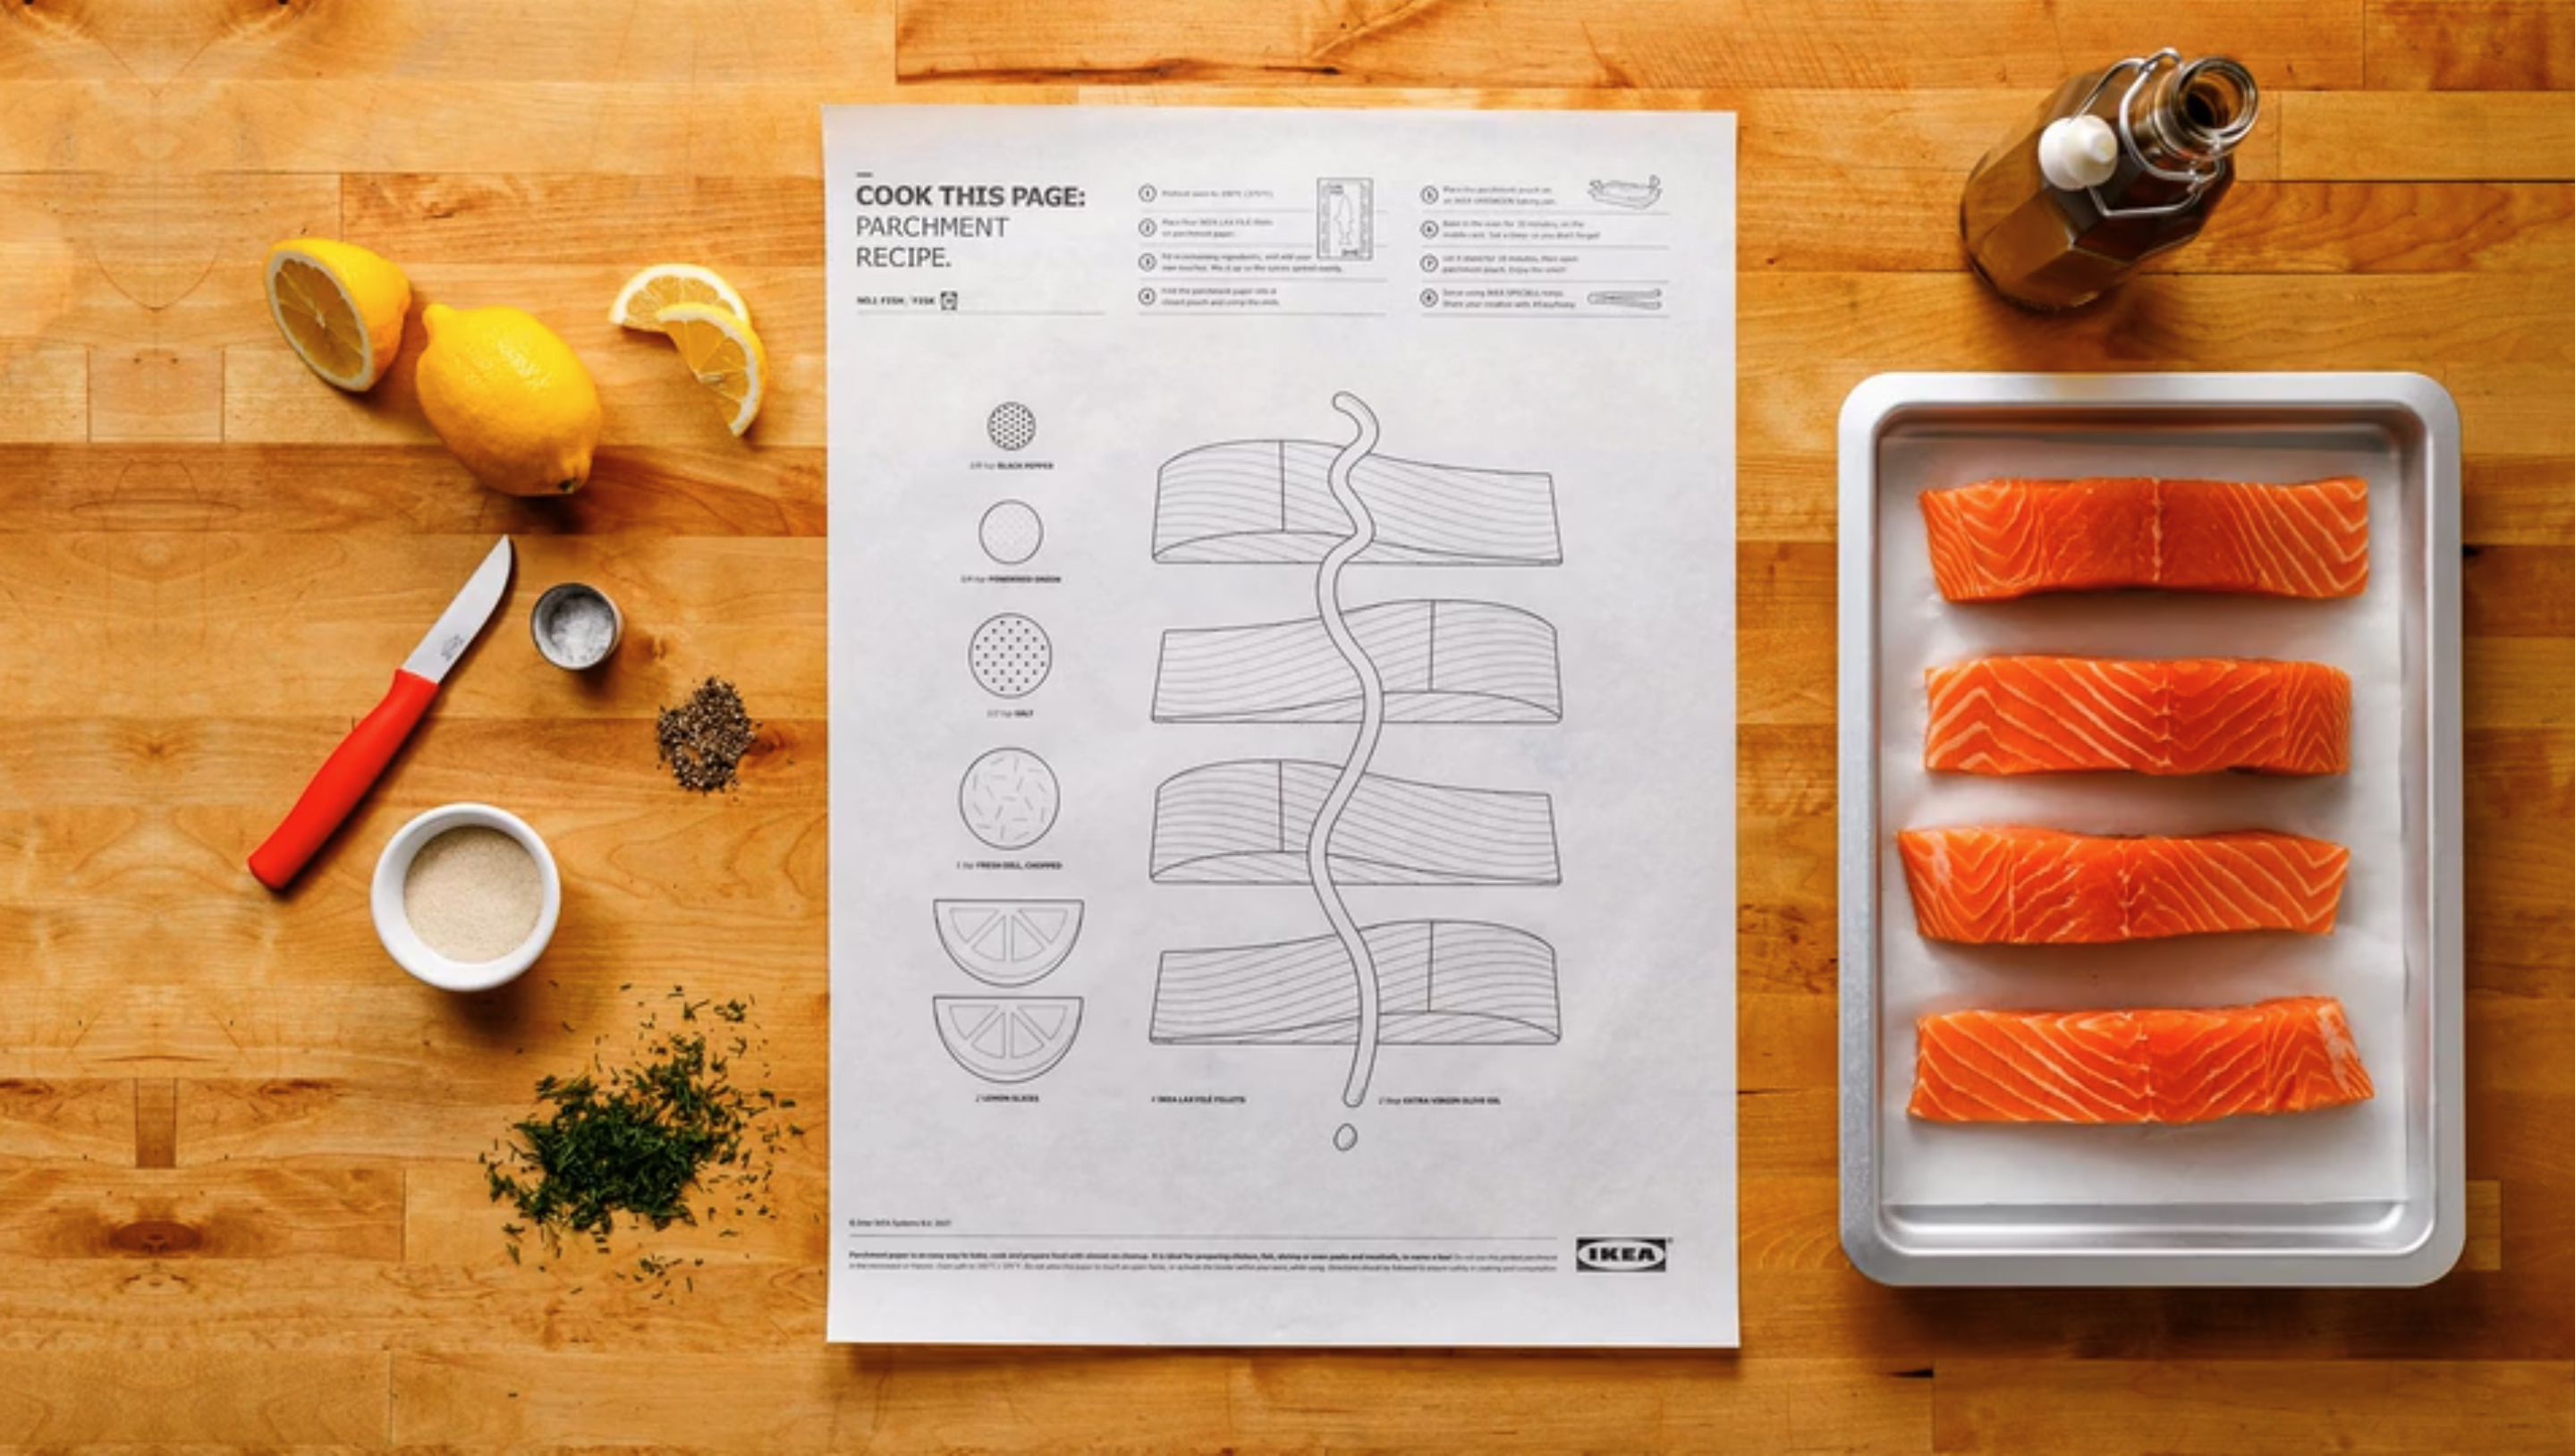 Ikea Cook This Page At Home The Inspiration Room